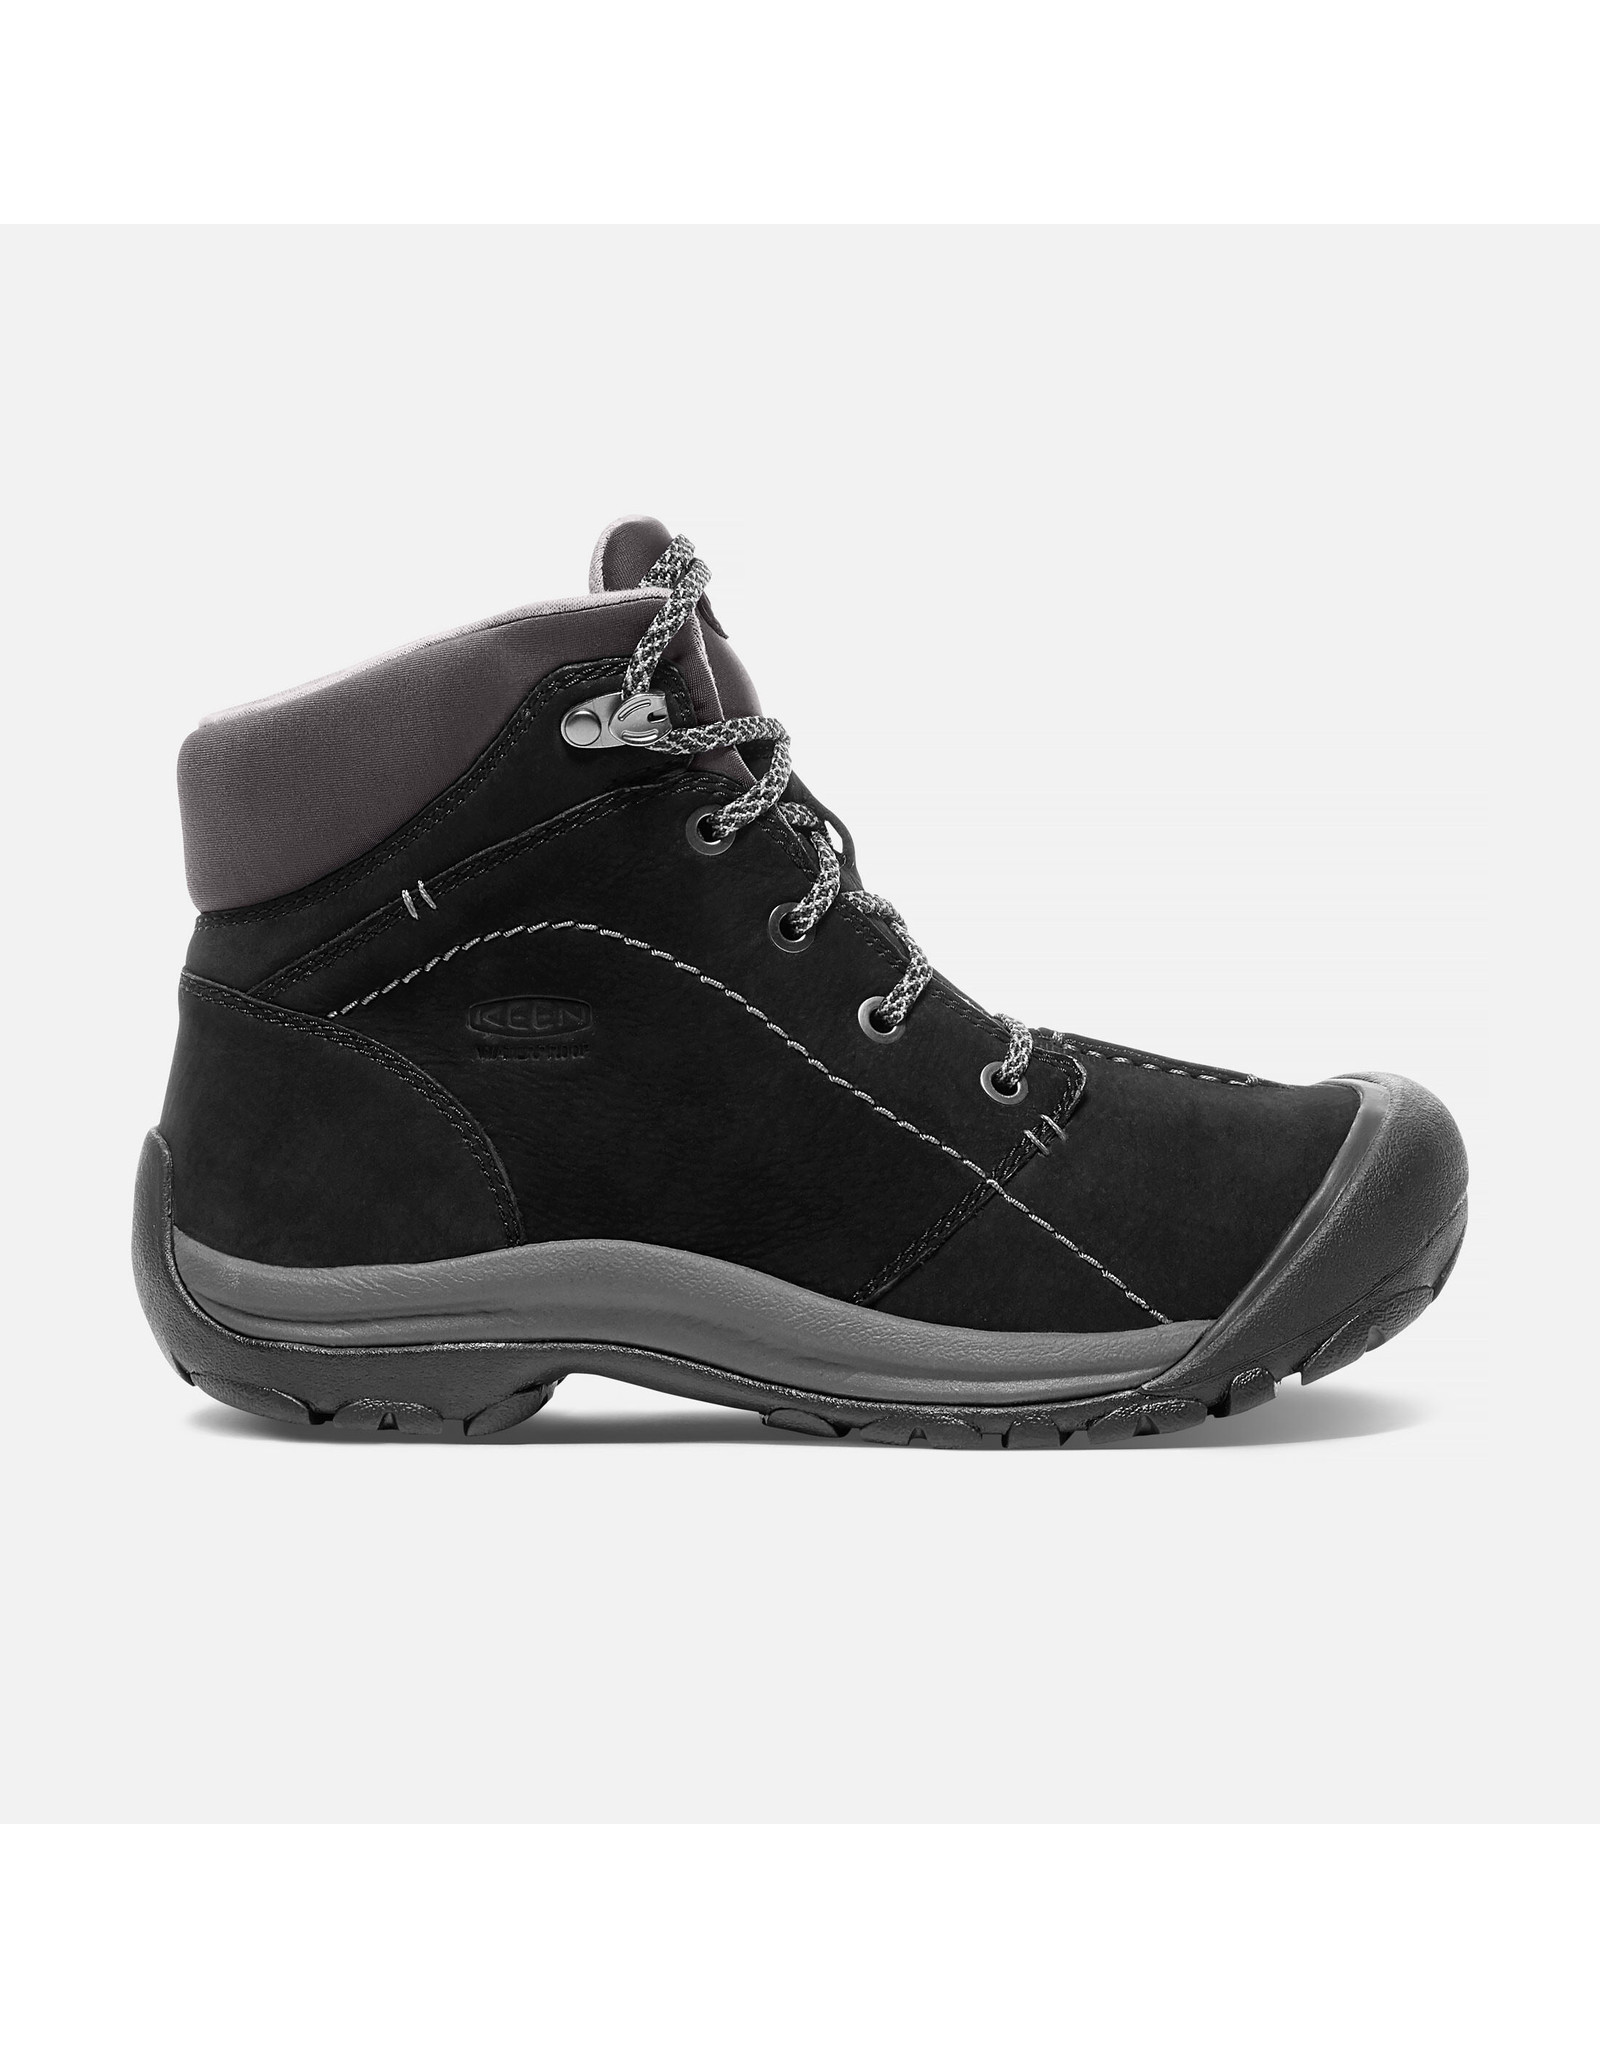 KEEN WOMEN'S KACI WINTER WATERPROOF MID-BLACK/MAGNET